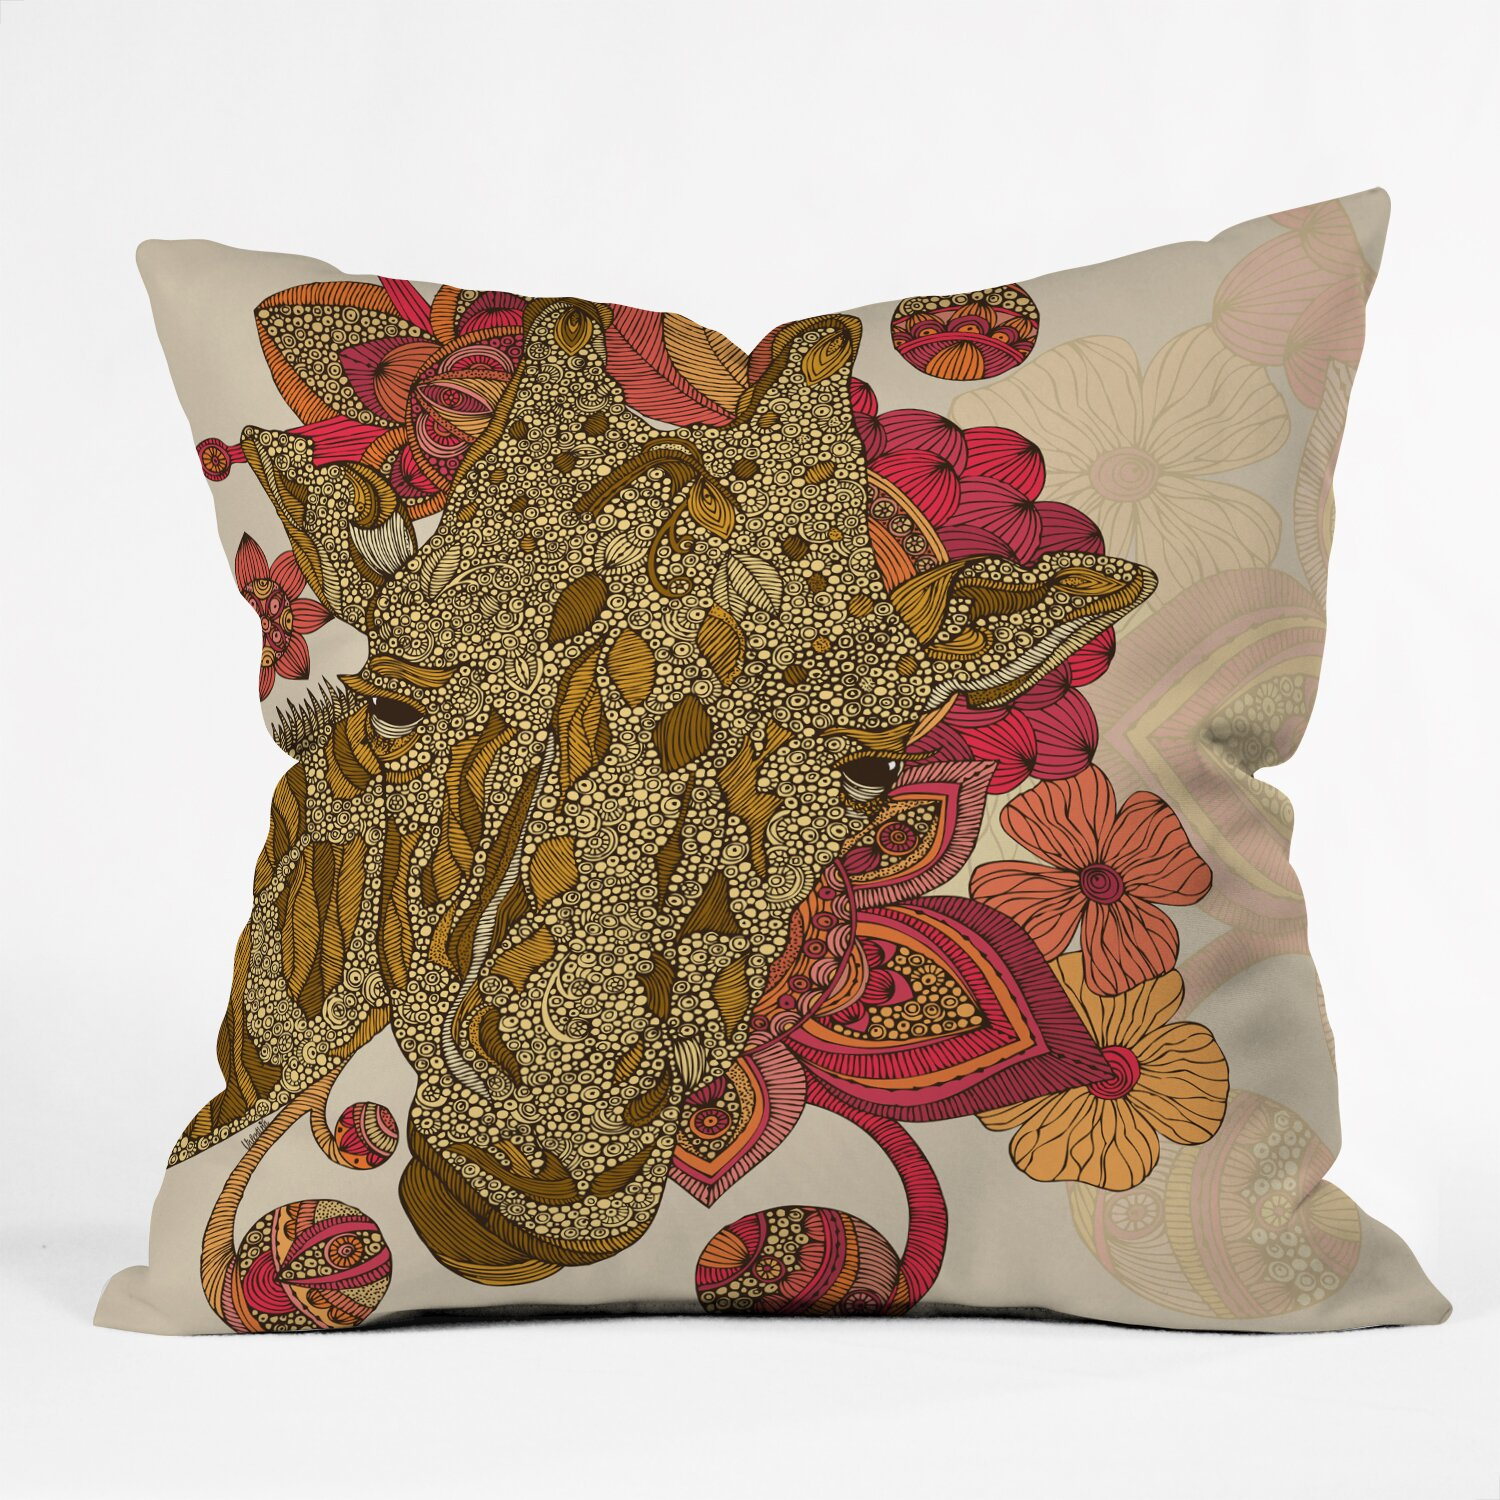 Giraffe Decorative Pillow : DENY Designs Valentina Ramos the Giraffe Throw Pillow & Reviews Wayfair.ca